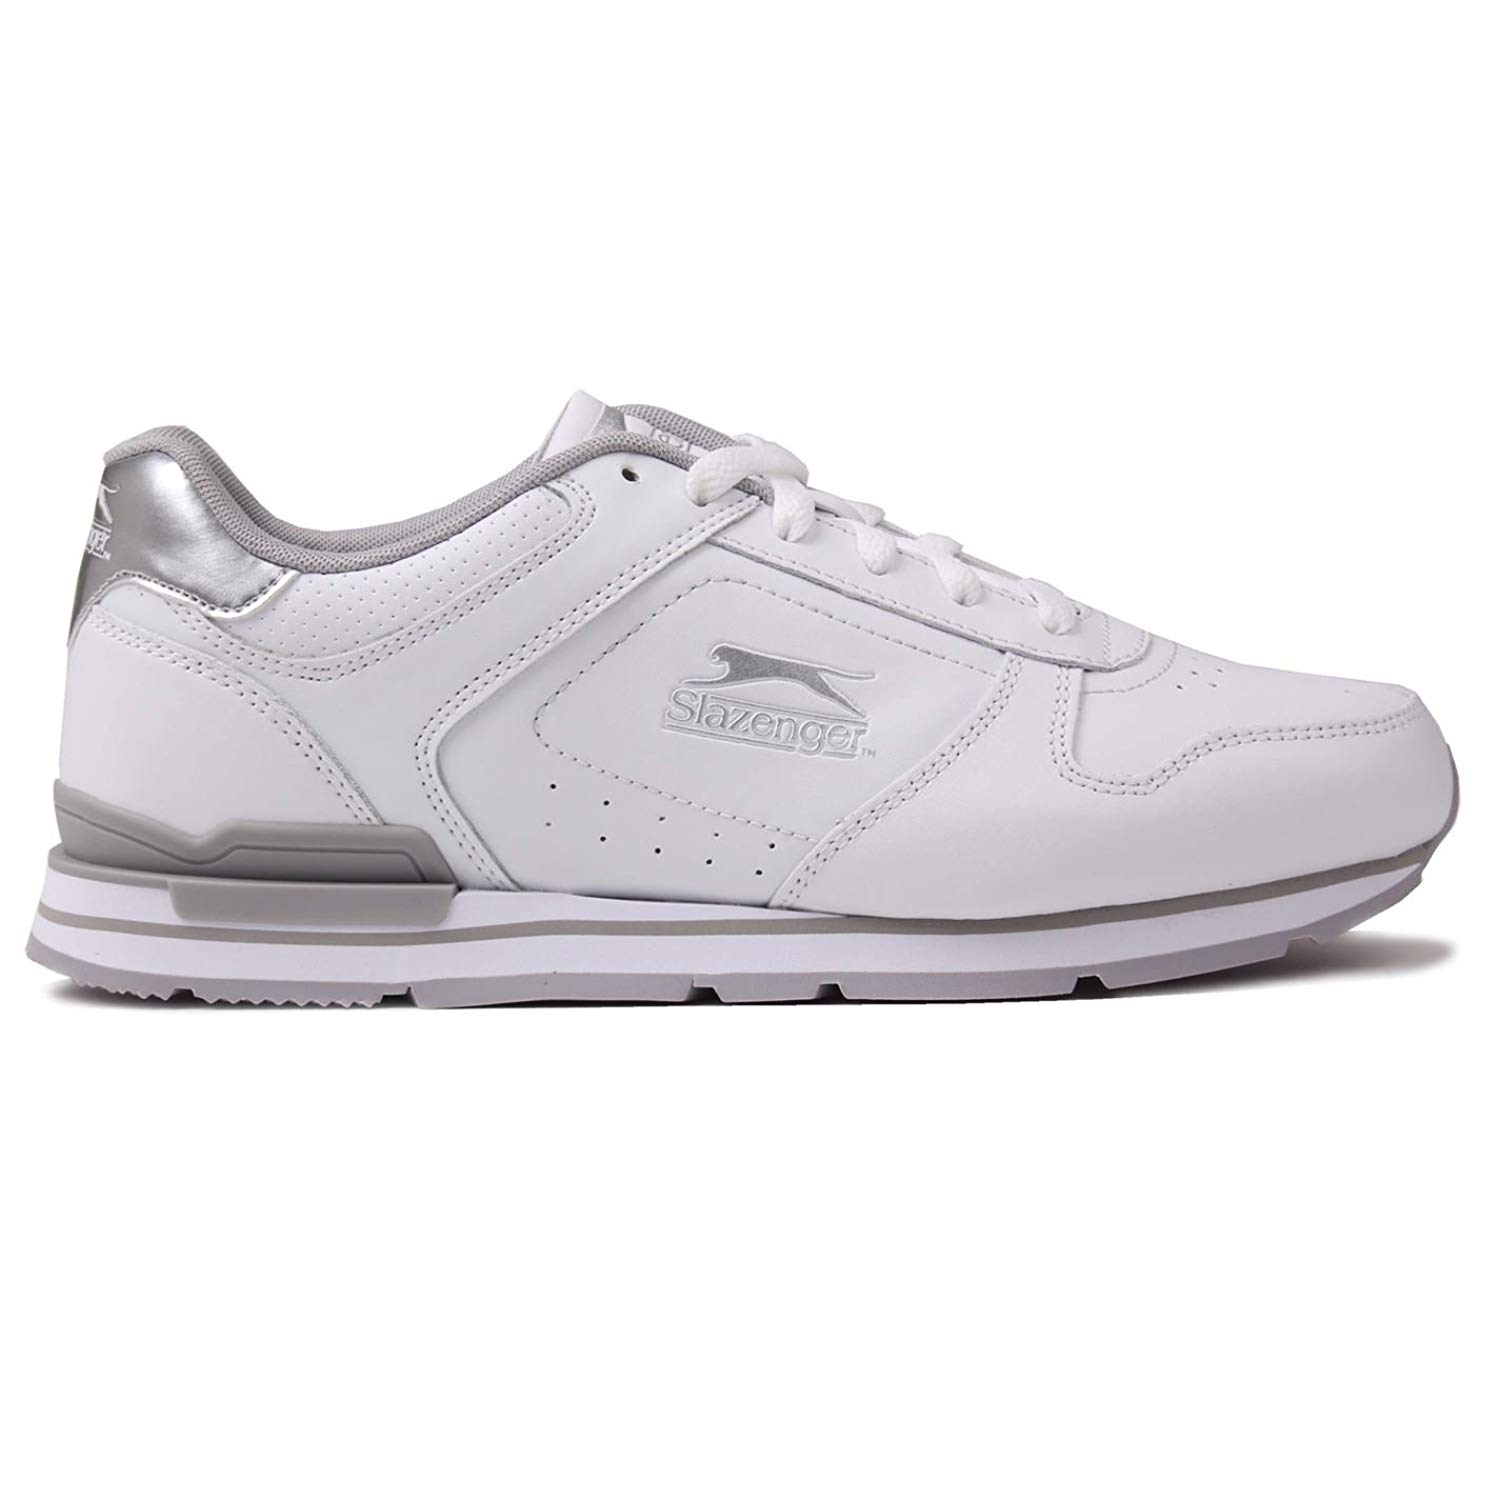 e0ea8a0c7fd Get Quotations · Slazenger Classic Trainers Lace up Padded Sneakers Shoes